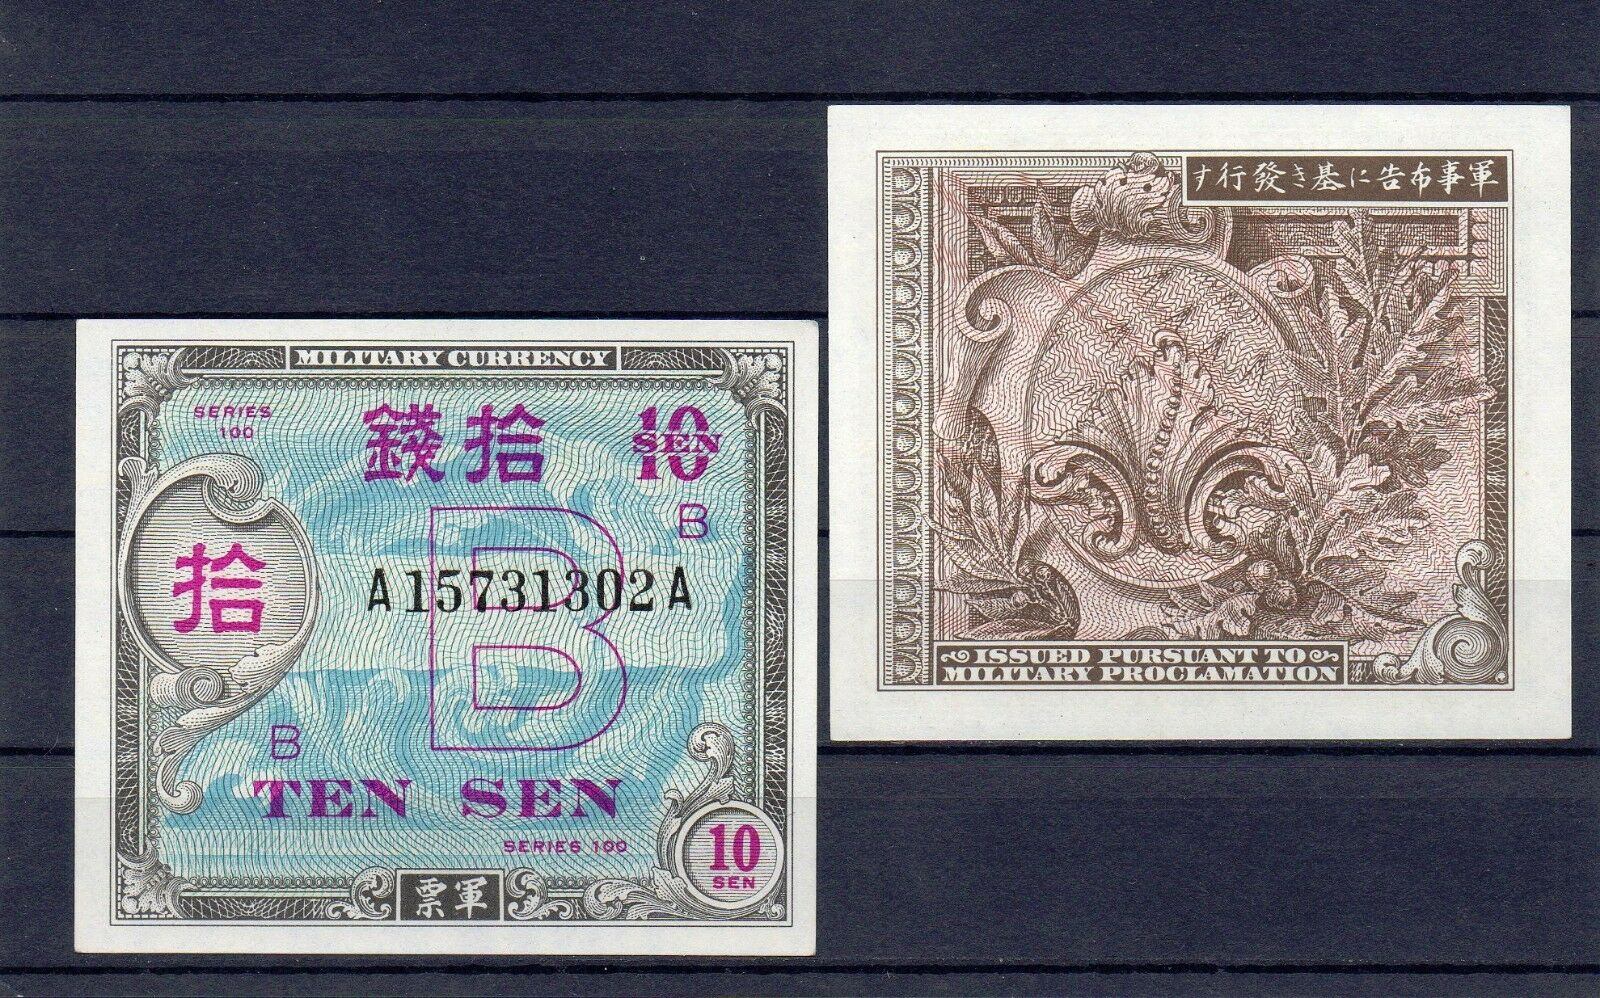 WWII 1945 P-63 UNC Allied Military Currency AMC MPC Japan 10 sen,